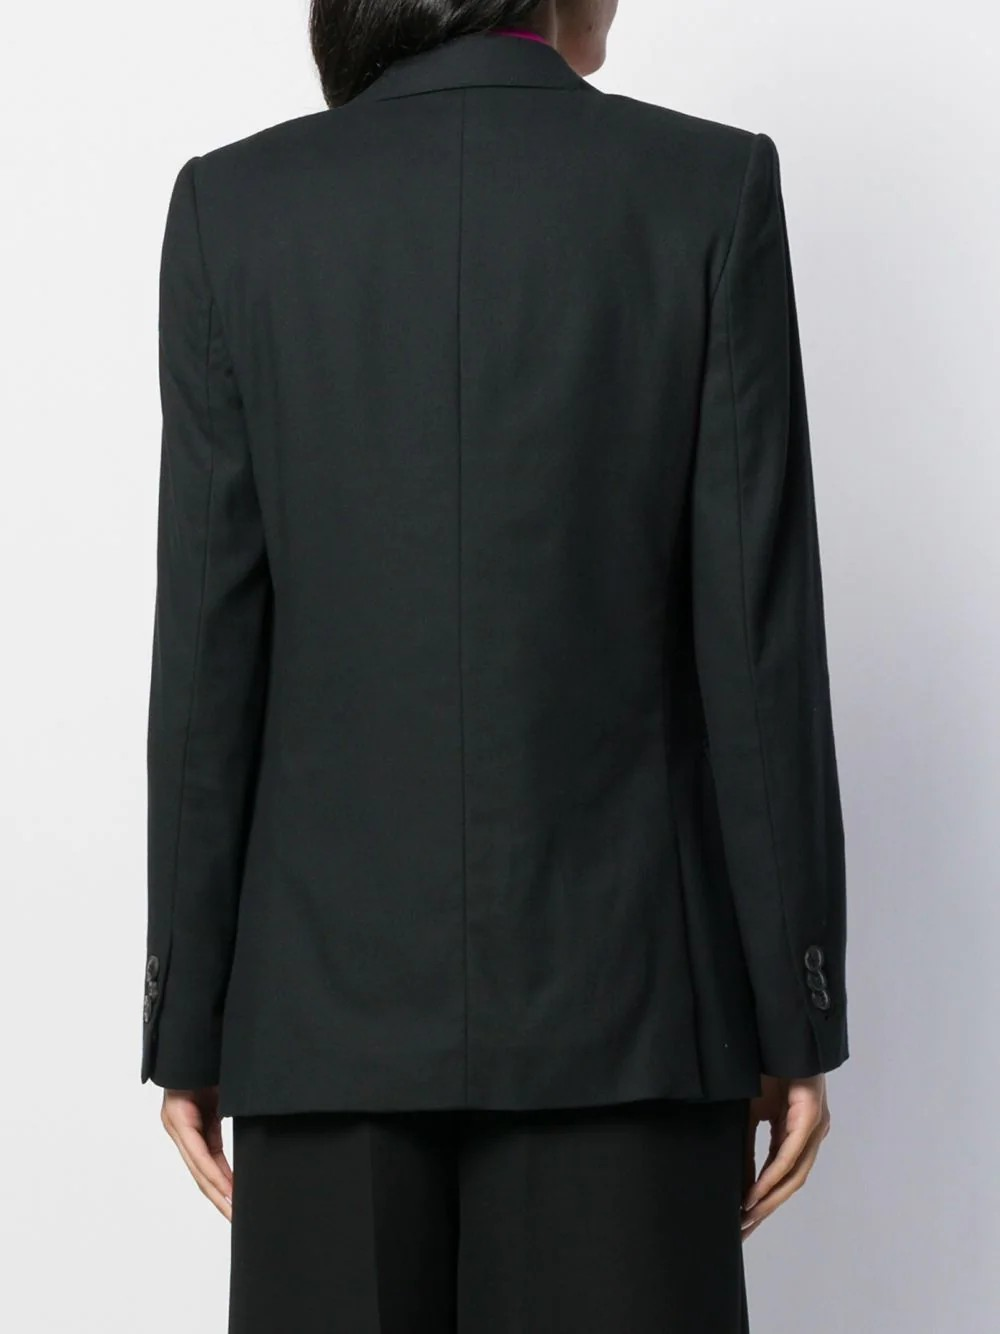 WOMAN HALF-LINED TWO BUTTONS JACKET